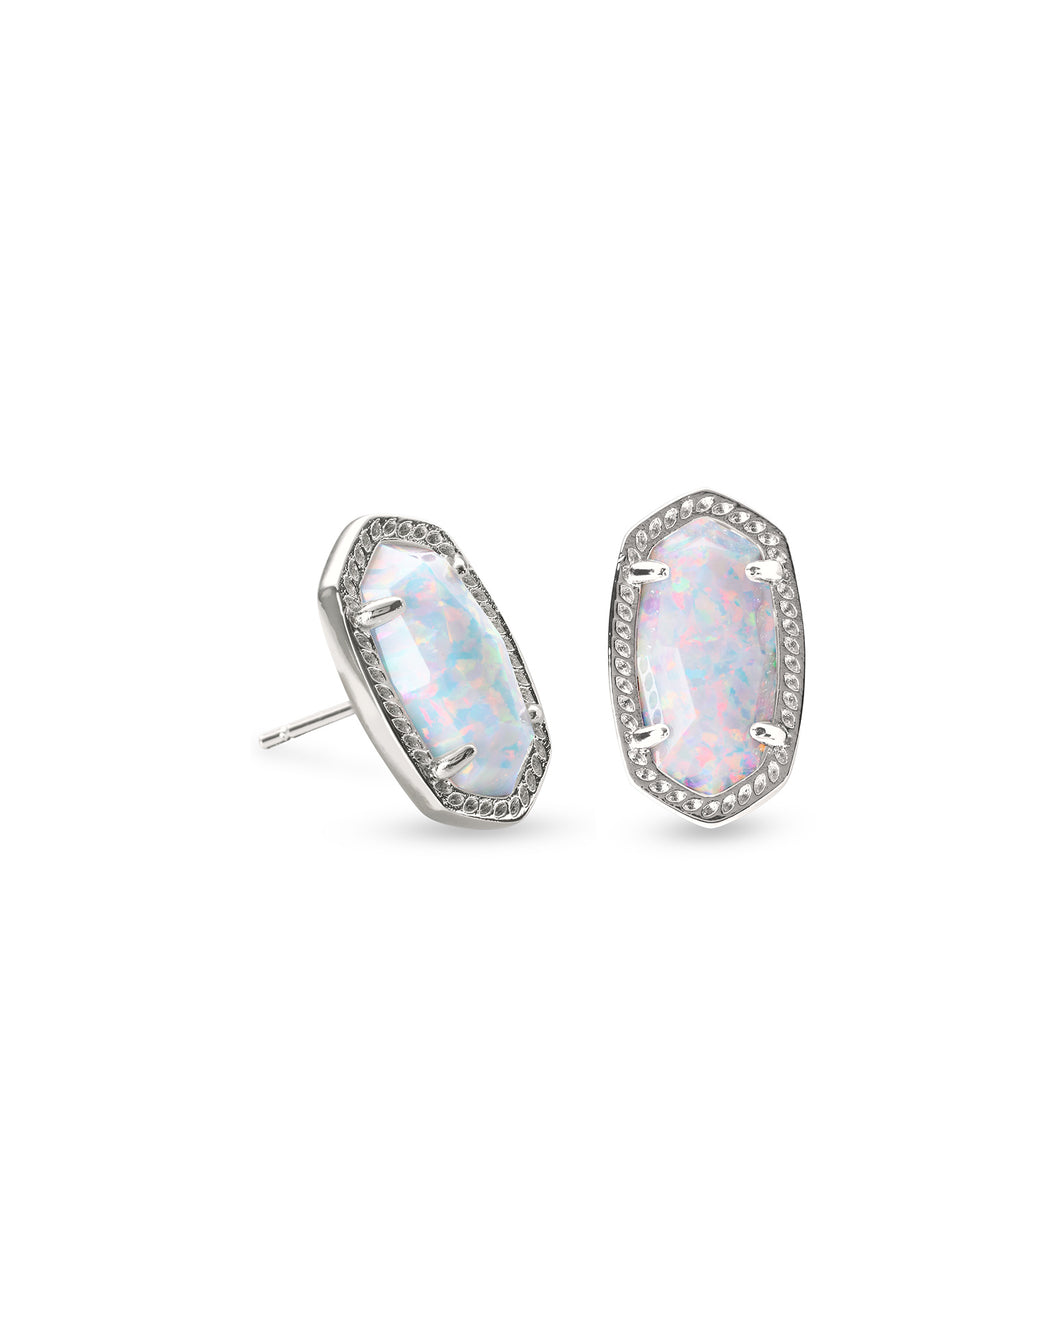 Kendra Scott Silver Ellie in White Opal